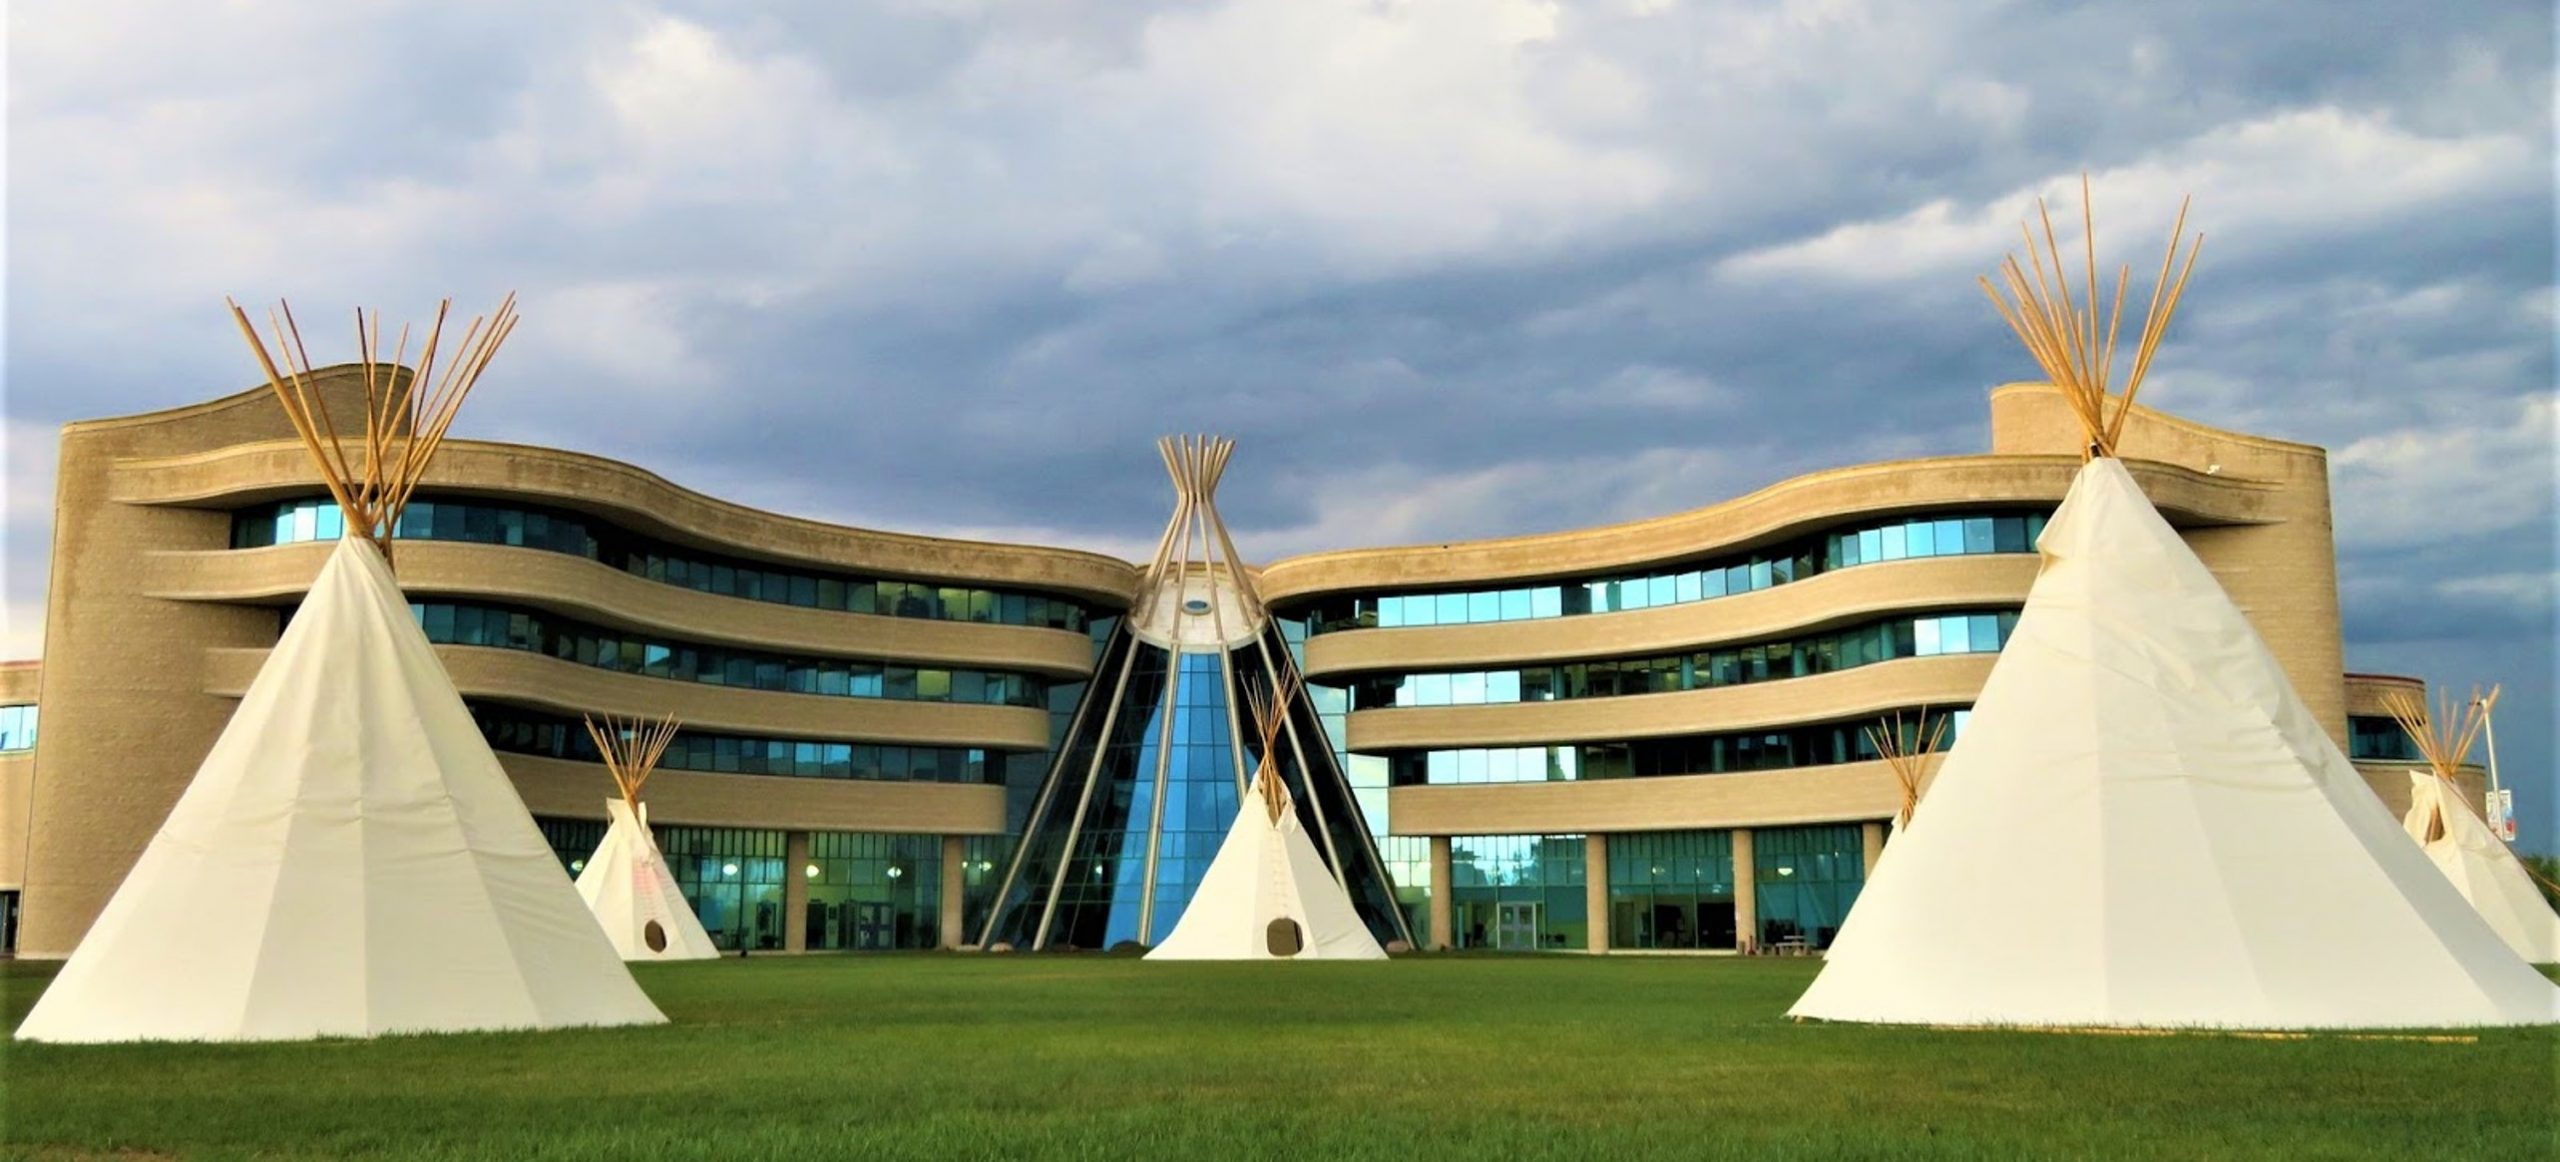 First Nations University of Canada, Regina SK. Photo Credits to: Sean Marshall (CC BY-NC 2.0) [148]